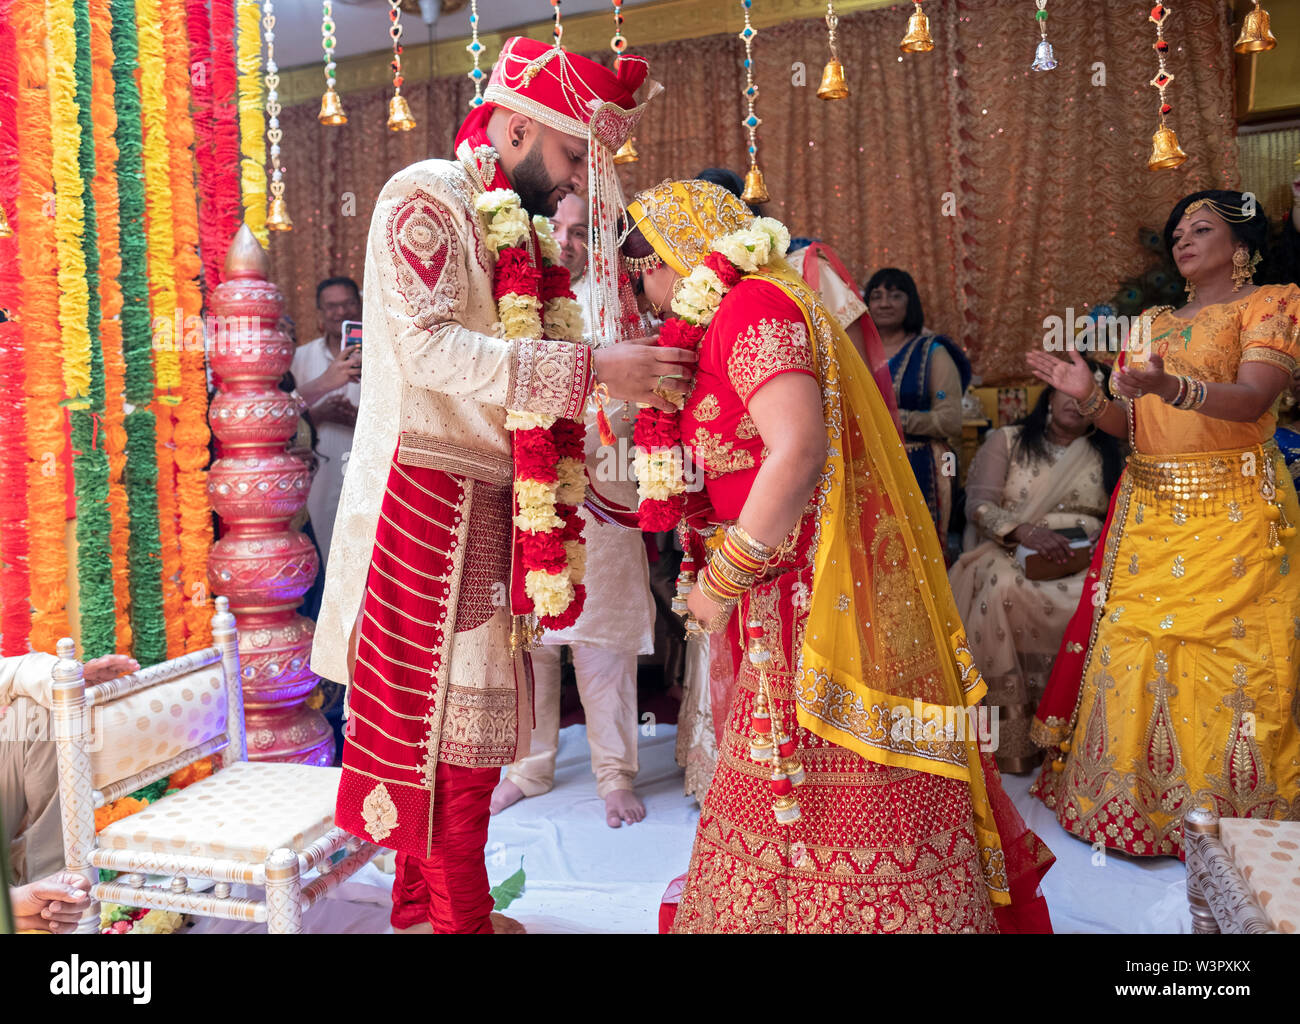 Wedding Garlands High Resolution Stock Photography And Images Alamy